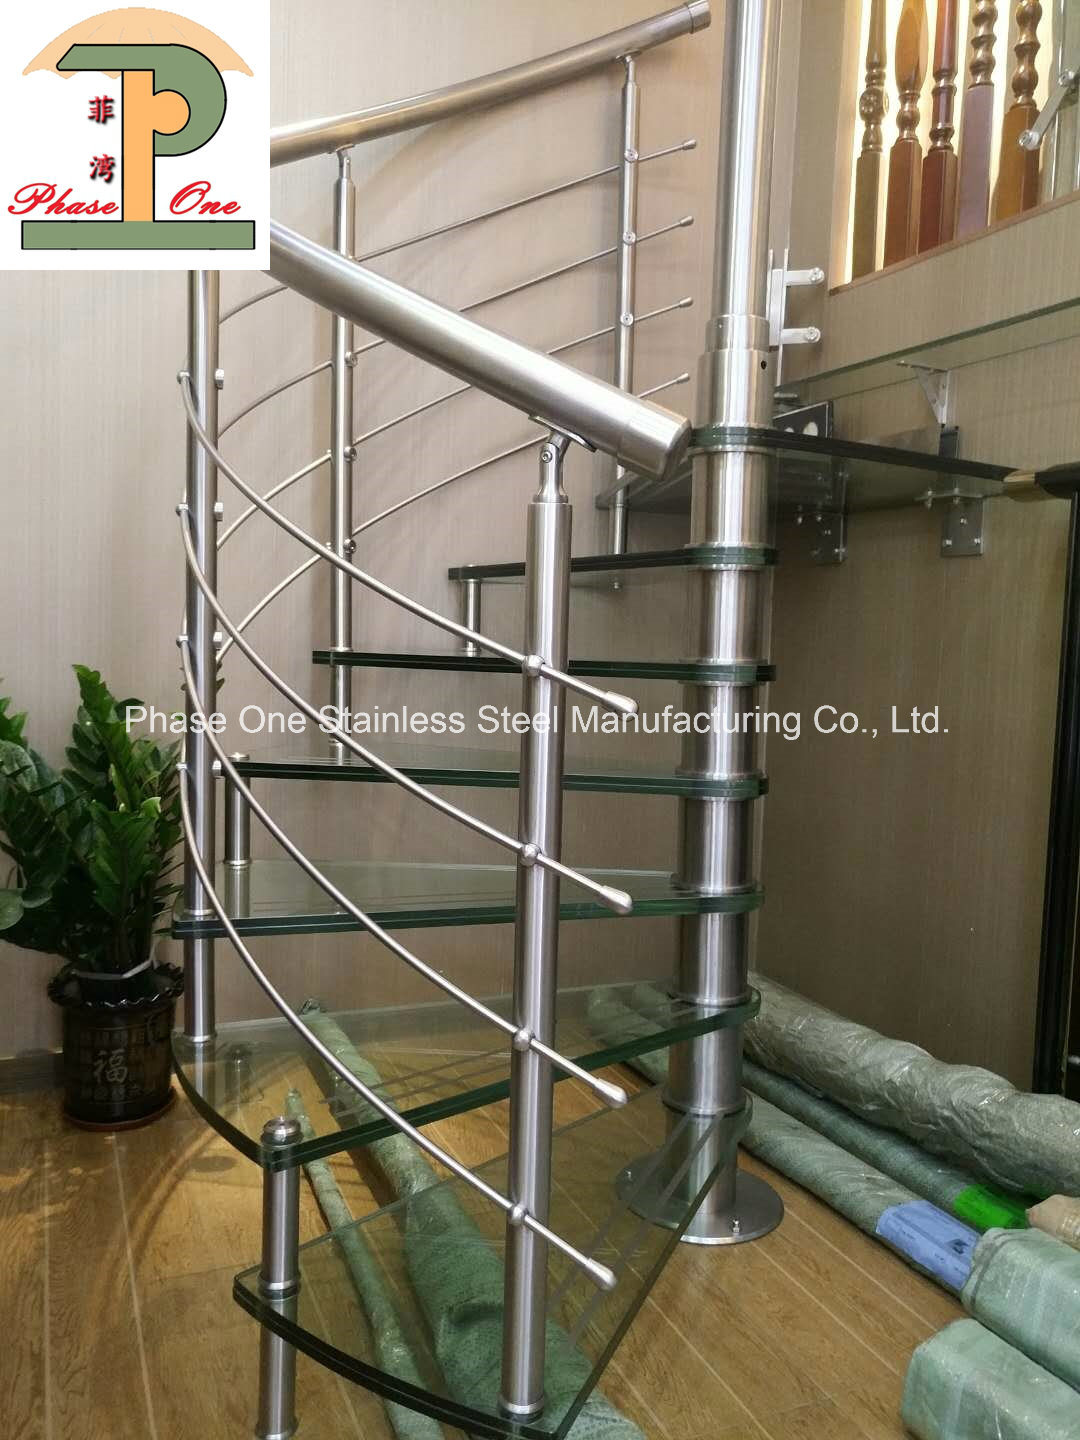 China Spiral Staircase, Spiral Staircase Manufacturers, Suppliers |  Made In China.com